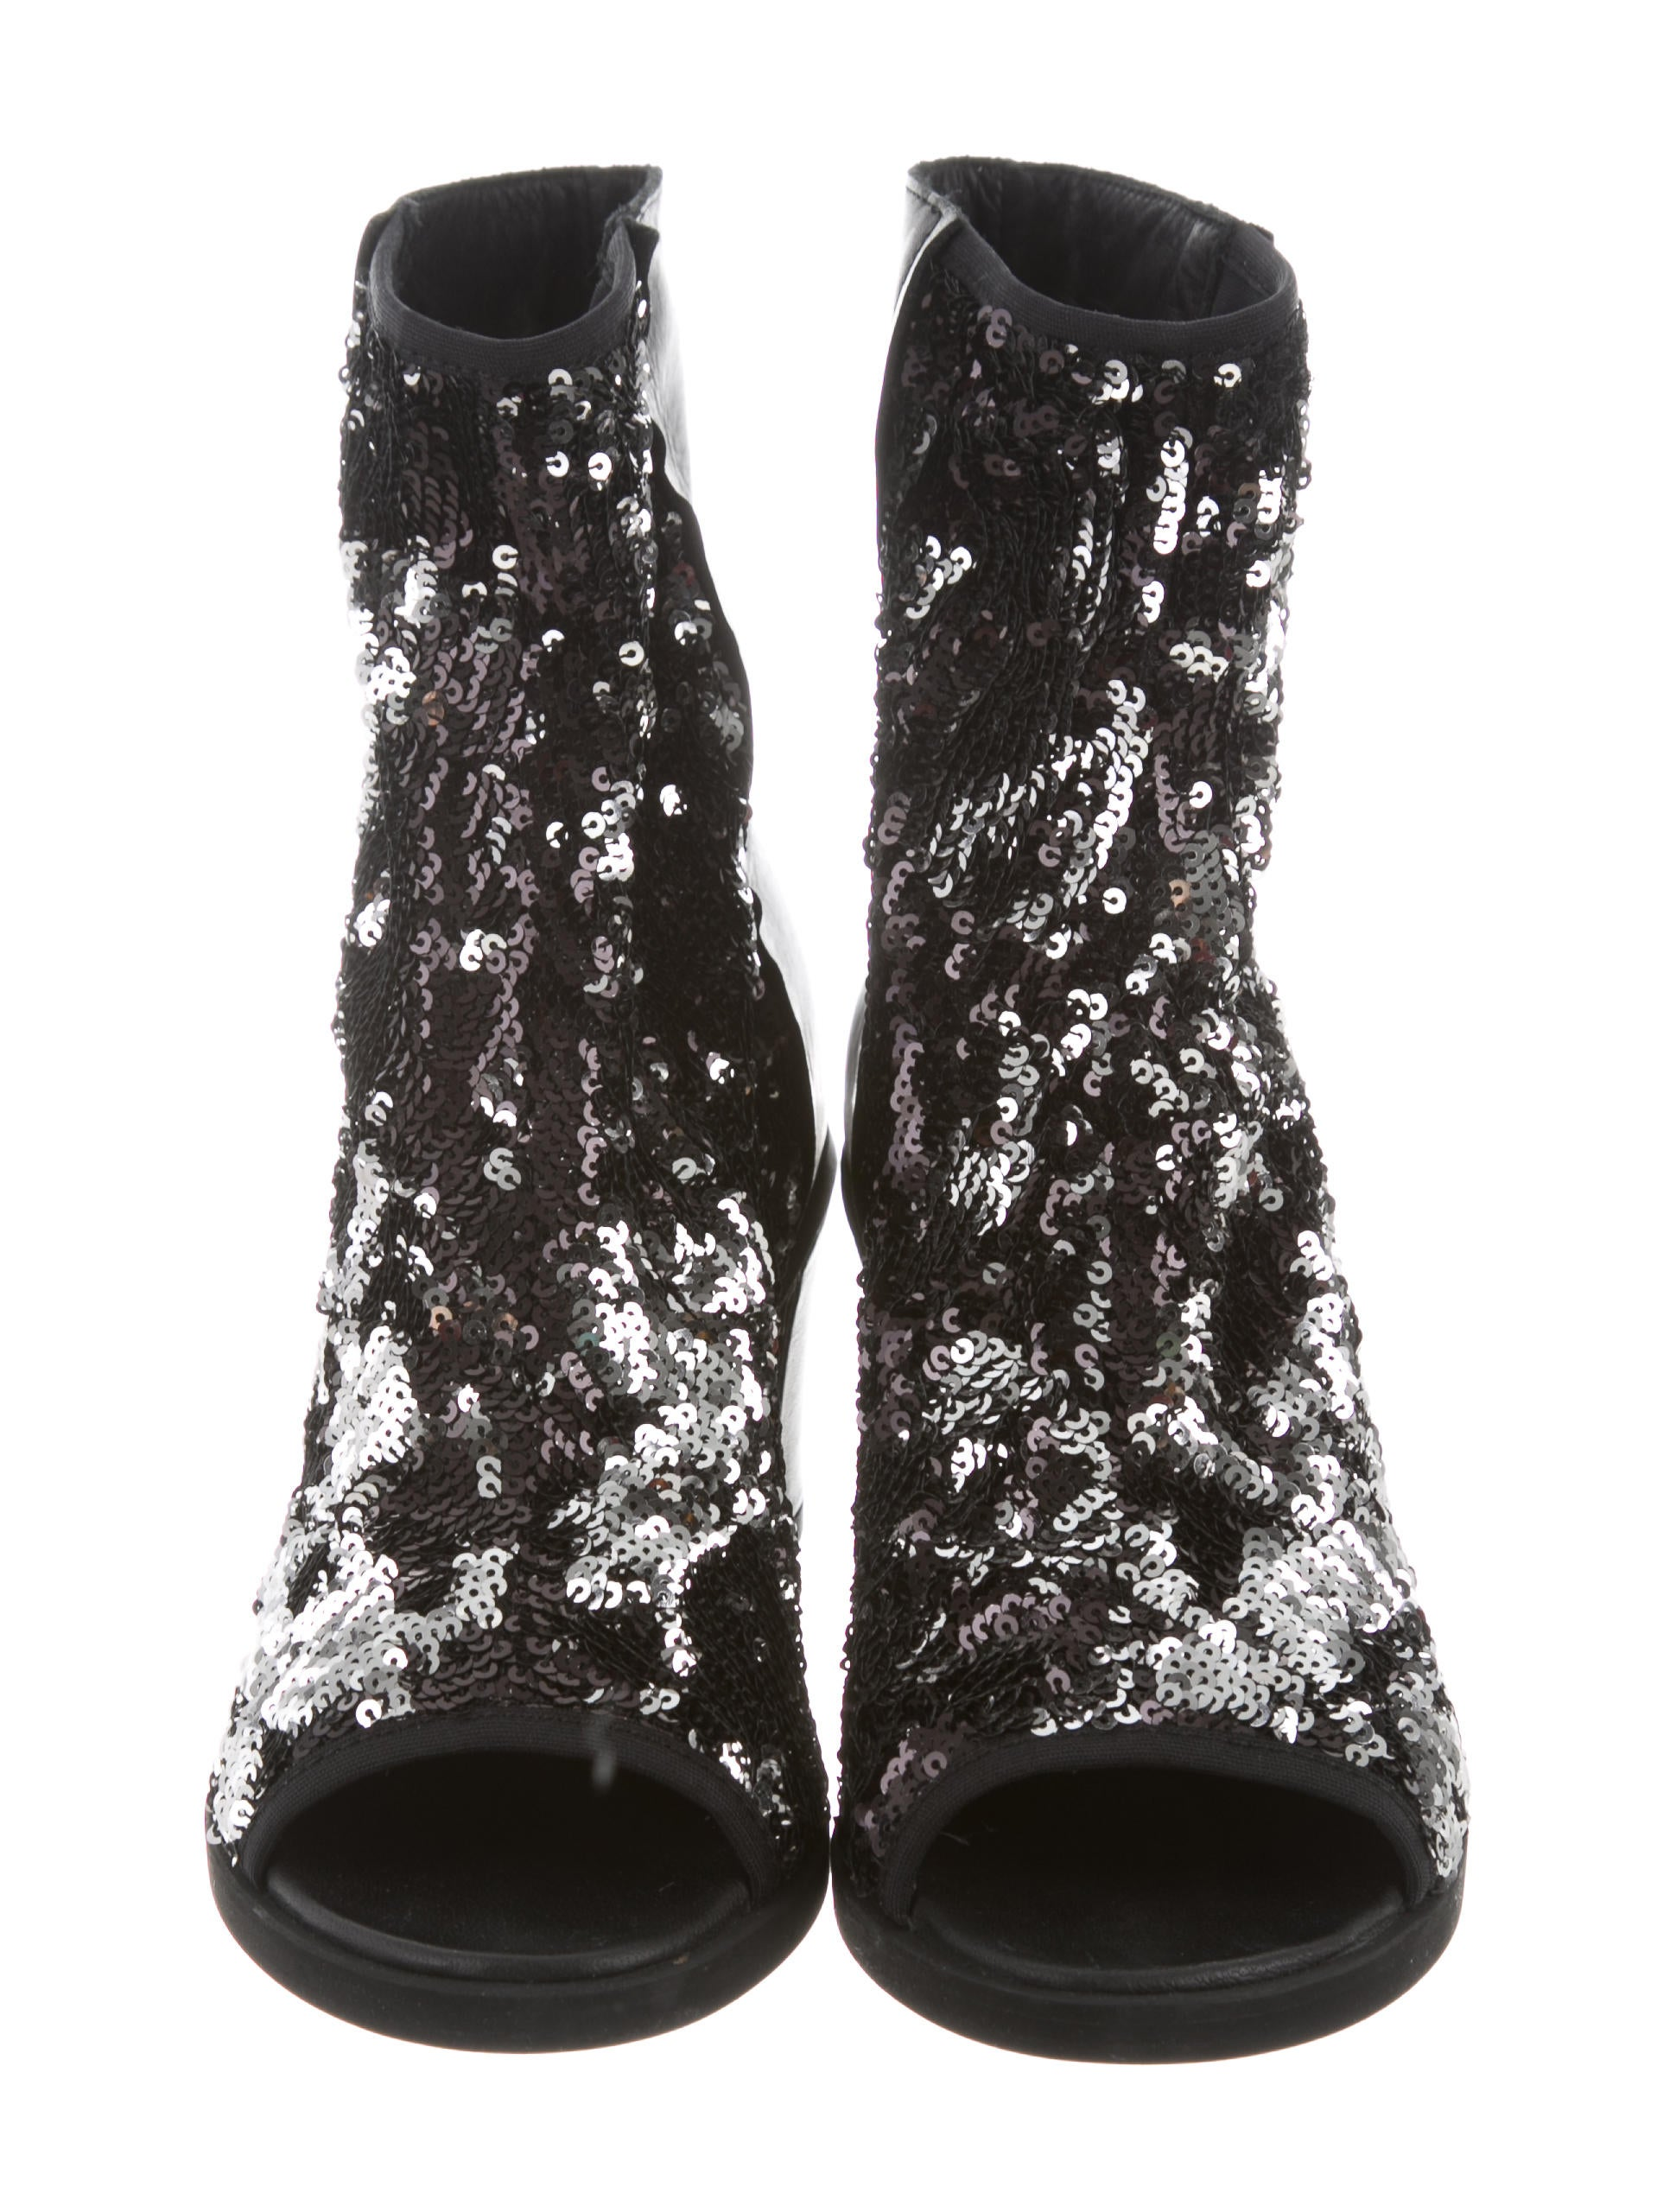 MM6 Maison Margiela MM6 Maison Martin Margiela Sequined Peep-Toe Ankle Boots w/ Tags cheap new styles cheap shop for discount explore buy cheap cost TmXMg6CP5i